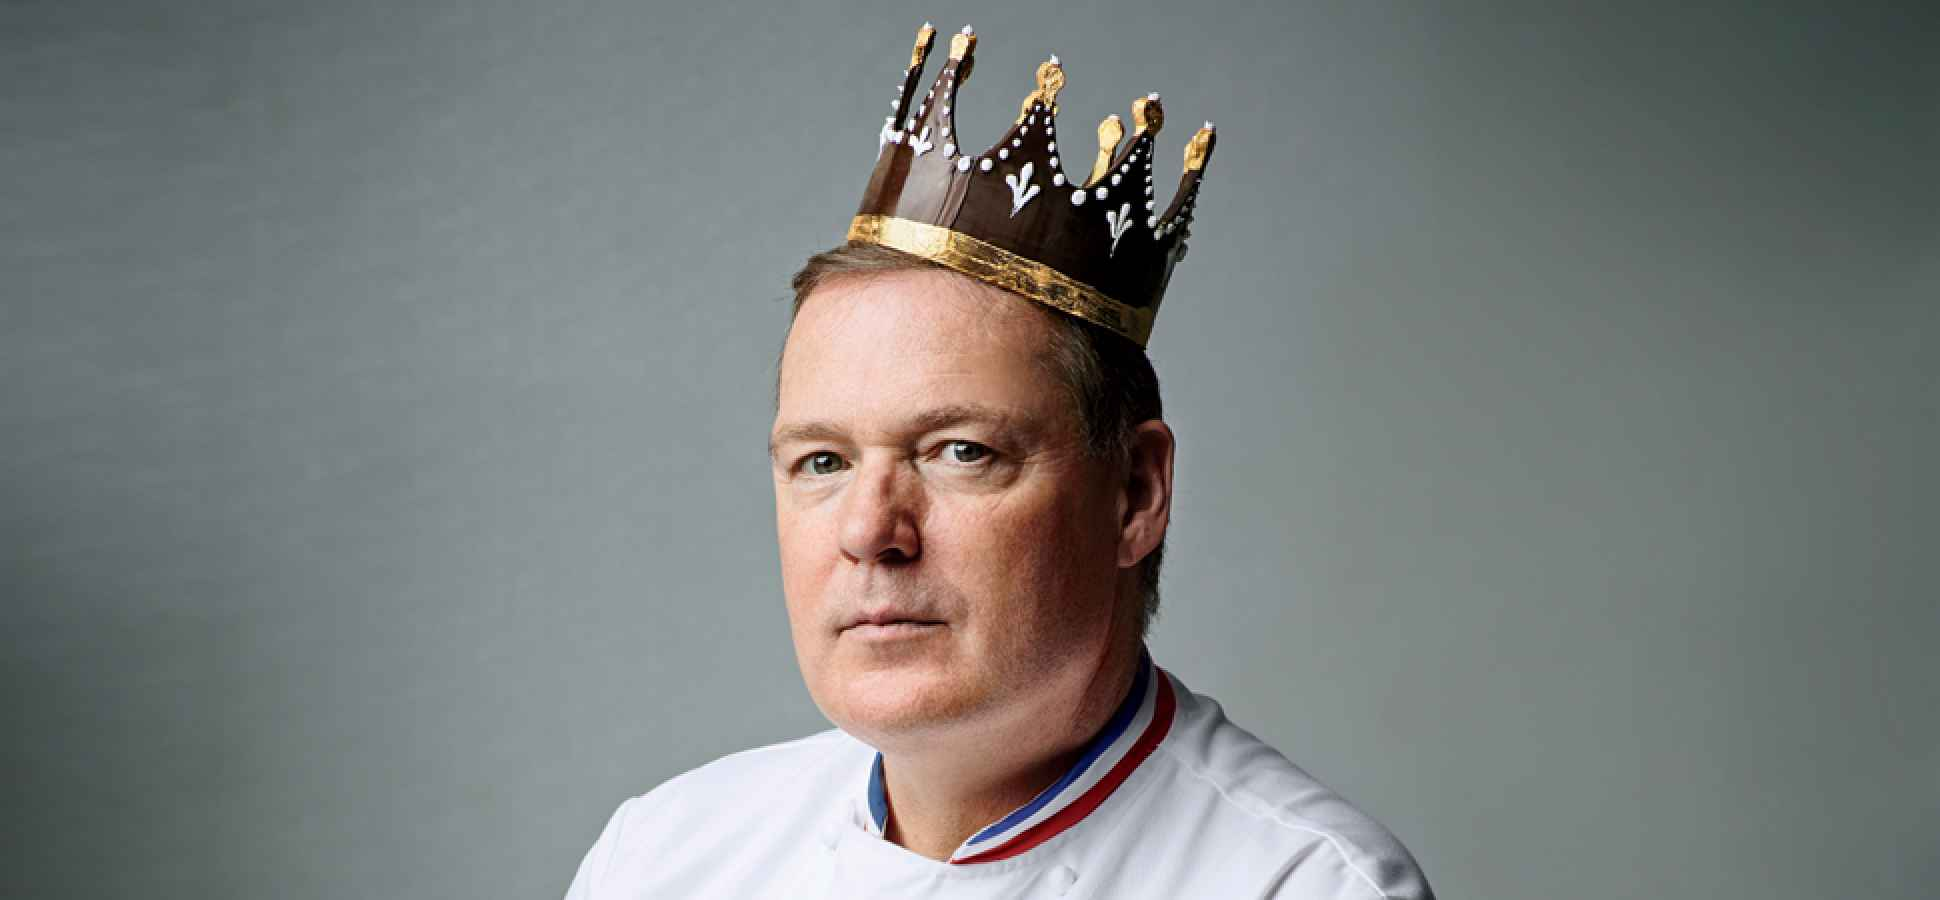 The 58-year old son of father (?) and mother(?), 180 cm tall Jacques Torres in 2018 photo